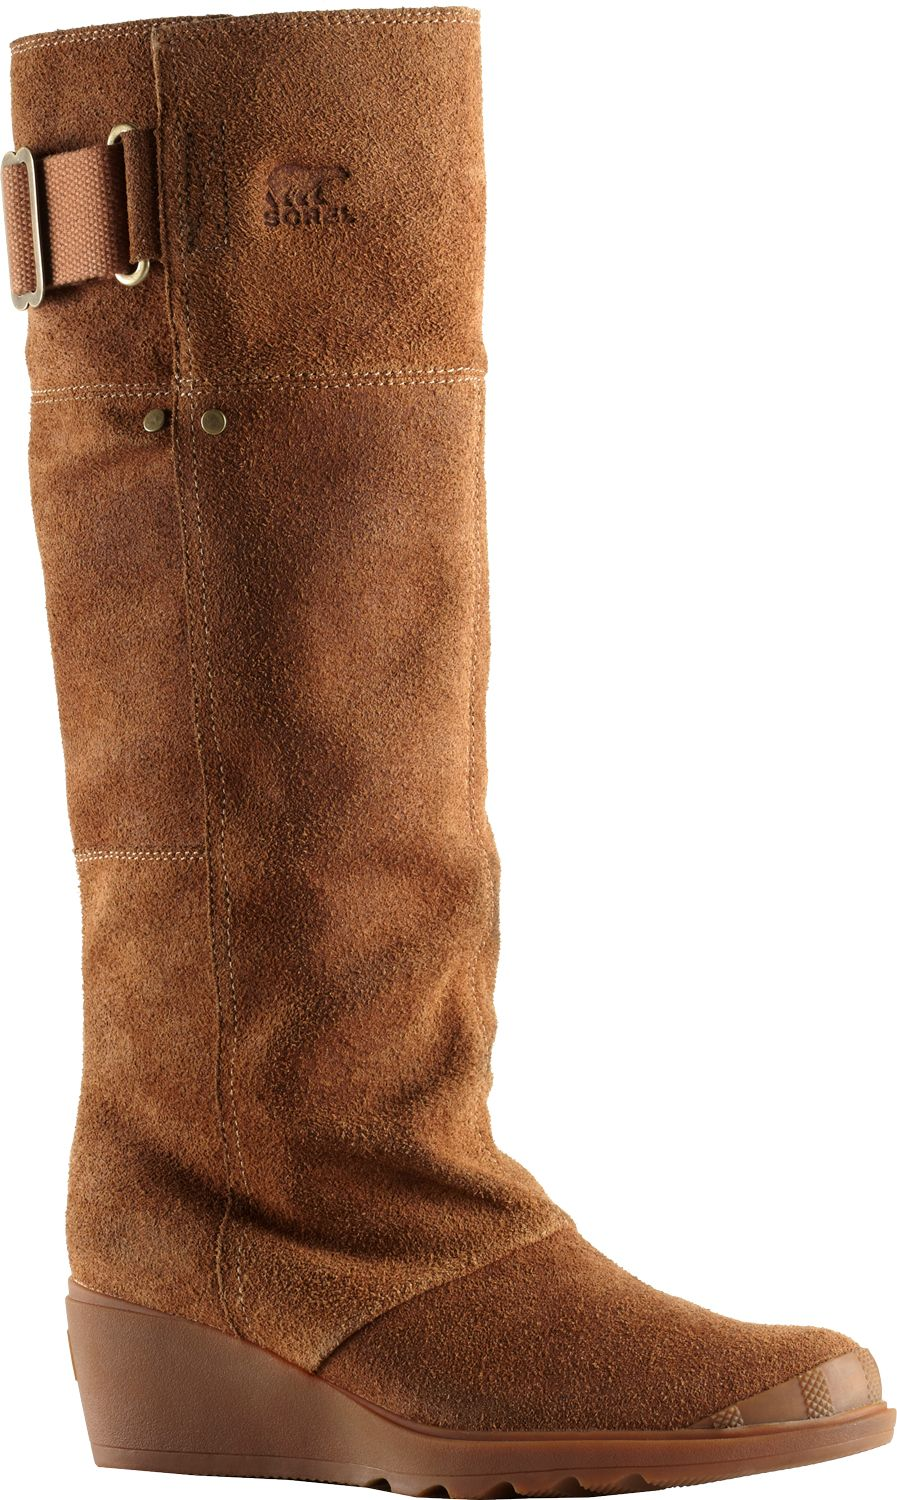 Sorel Suede Knee-High Boots Discount Sale Sale Store Free Shipping Genuine Classic Sale Online Cheap Nicekicks pJ54r3WBlu